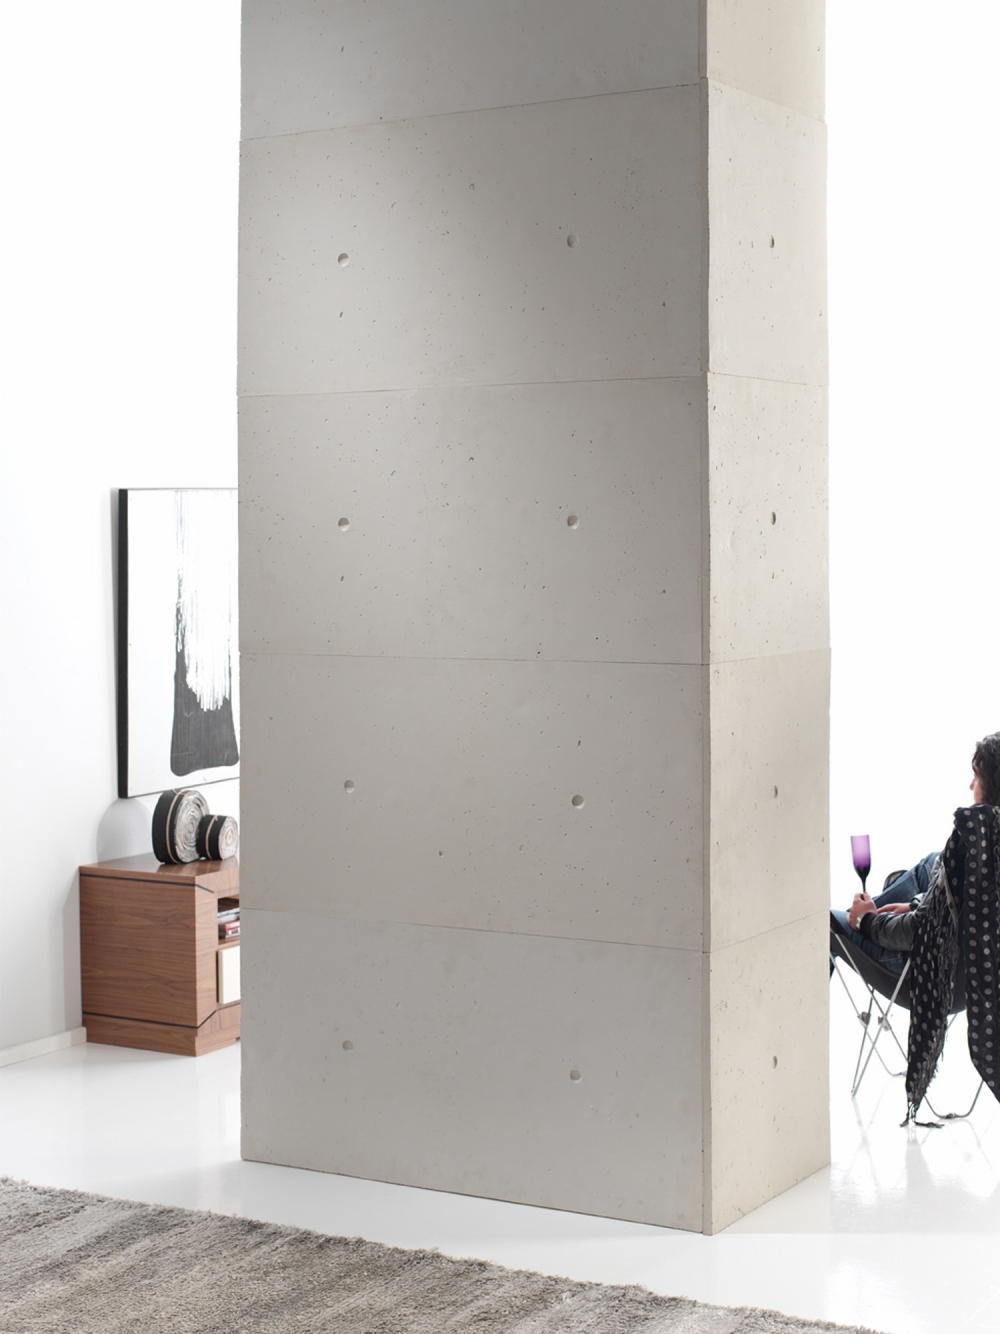 PR- 320 Concrete panelling from Dreamwall